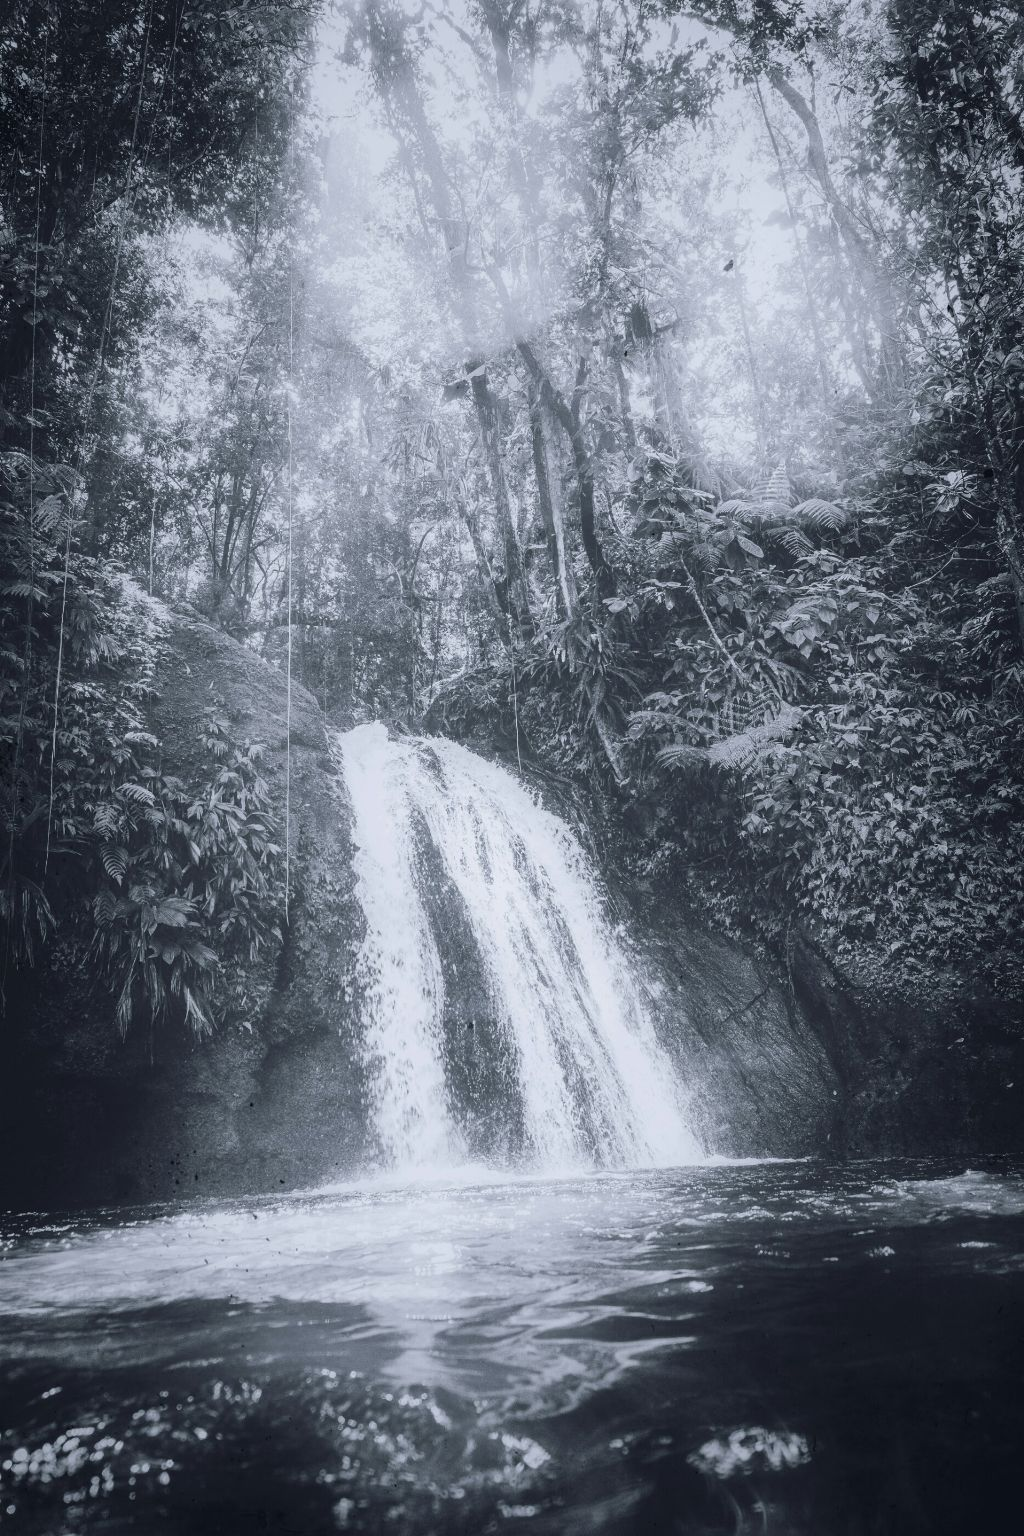 #freetoedit #waterfall #water #splash #wood #trunk #forest #trees #wood #arbre #tree #wood #woods #landscape #sky #ciel #woodlands #darkness #light #landscapes #photography #outdoors #earth #vegetation #grass #leaf #shade #leaves #winter #shadow #shadows #view #vista #blackandwhite #nature #outdoors #outdoor #natural #photo #photographer #photograph #pic #photos #picsart #instagram #pics